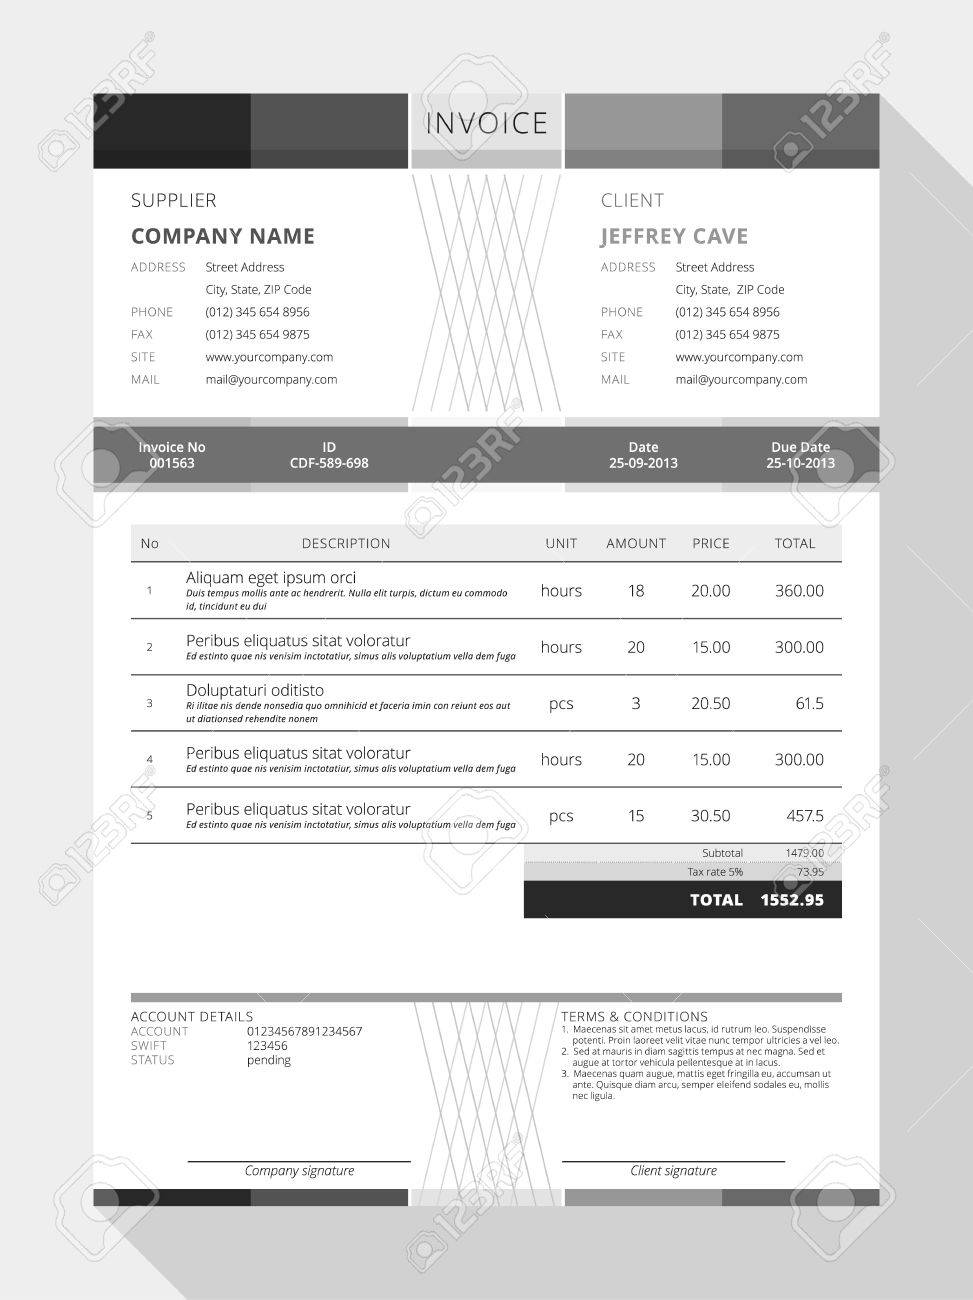 Angkajituus  Surprising Design An Invoice  Professional Graphic Design Invoice  With Glamorous Vector Customizable Invoice Form Template Design Vector   Design An Invoice With Astonishing Invoice Number Tracking Also Paypal Invoice Pay With Credit Card In Addition Send Invoice On Ebay And Invoice Zoho As Well As Commercial Invoice Template Free Download Additionally Roof Invoice From Happytomco With Angkajituus  Glamorous Design An Invoice  Professional Graphic Design Invoice  With Astonishing Vector Customizable Invoice Form Template Design Vector   Design An Invoice And Surprising Invoice Number Tracking Also Paypal Invoice Pay With Credit Card In Addition Send Invoice On Ebay From Happytomco